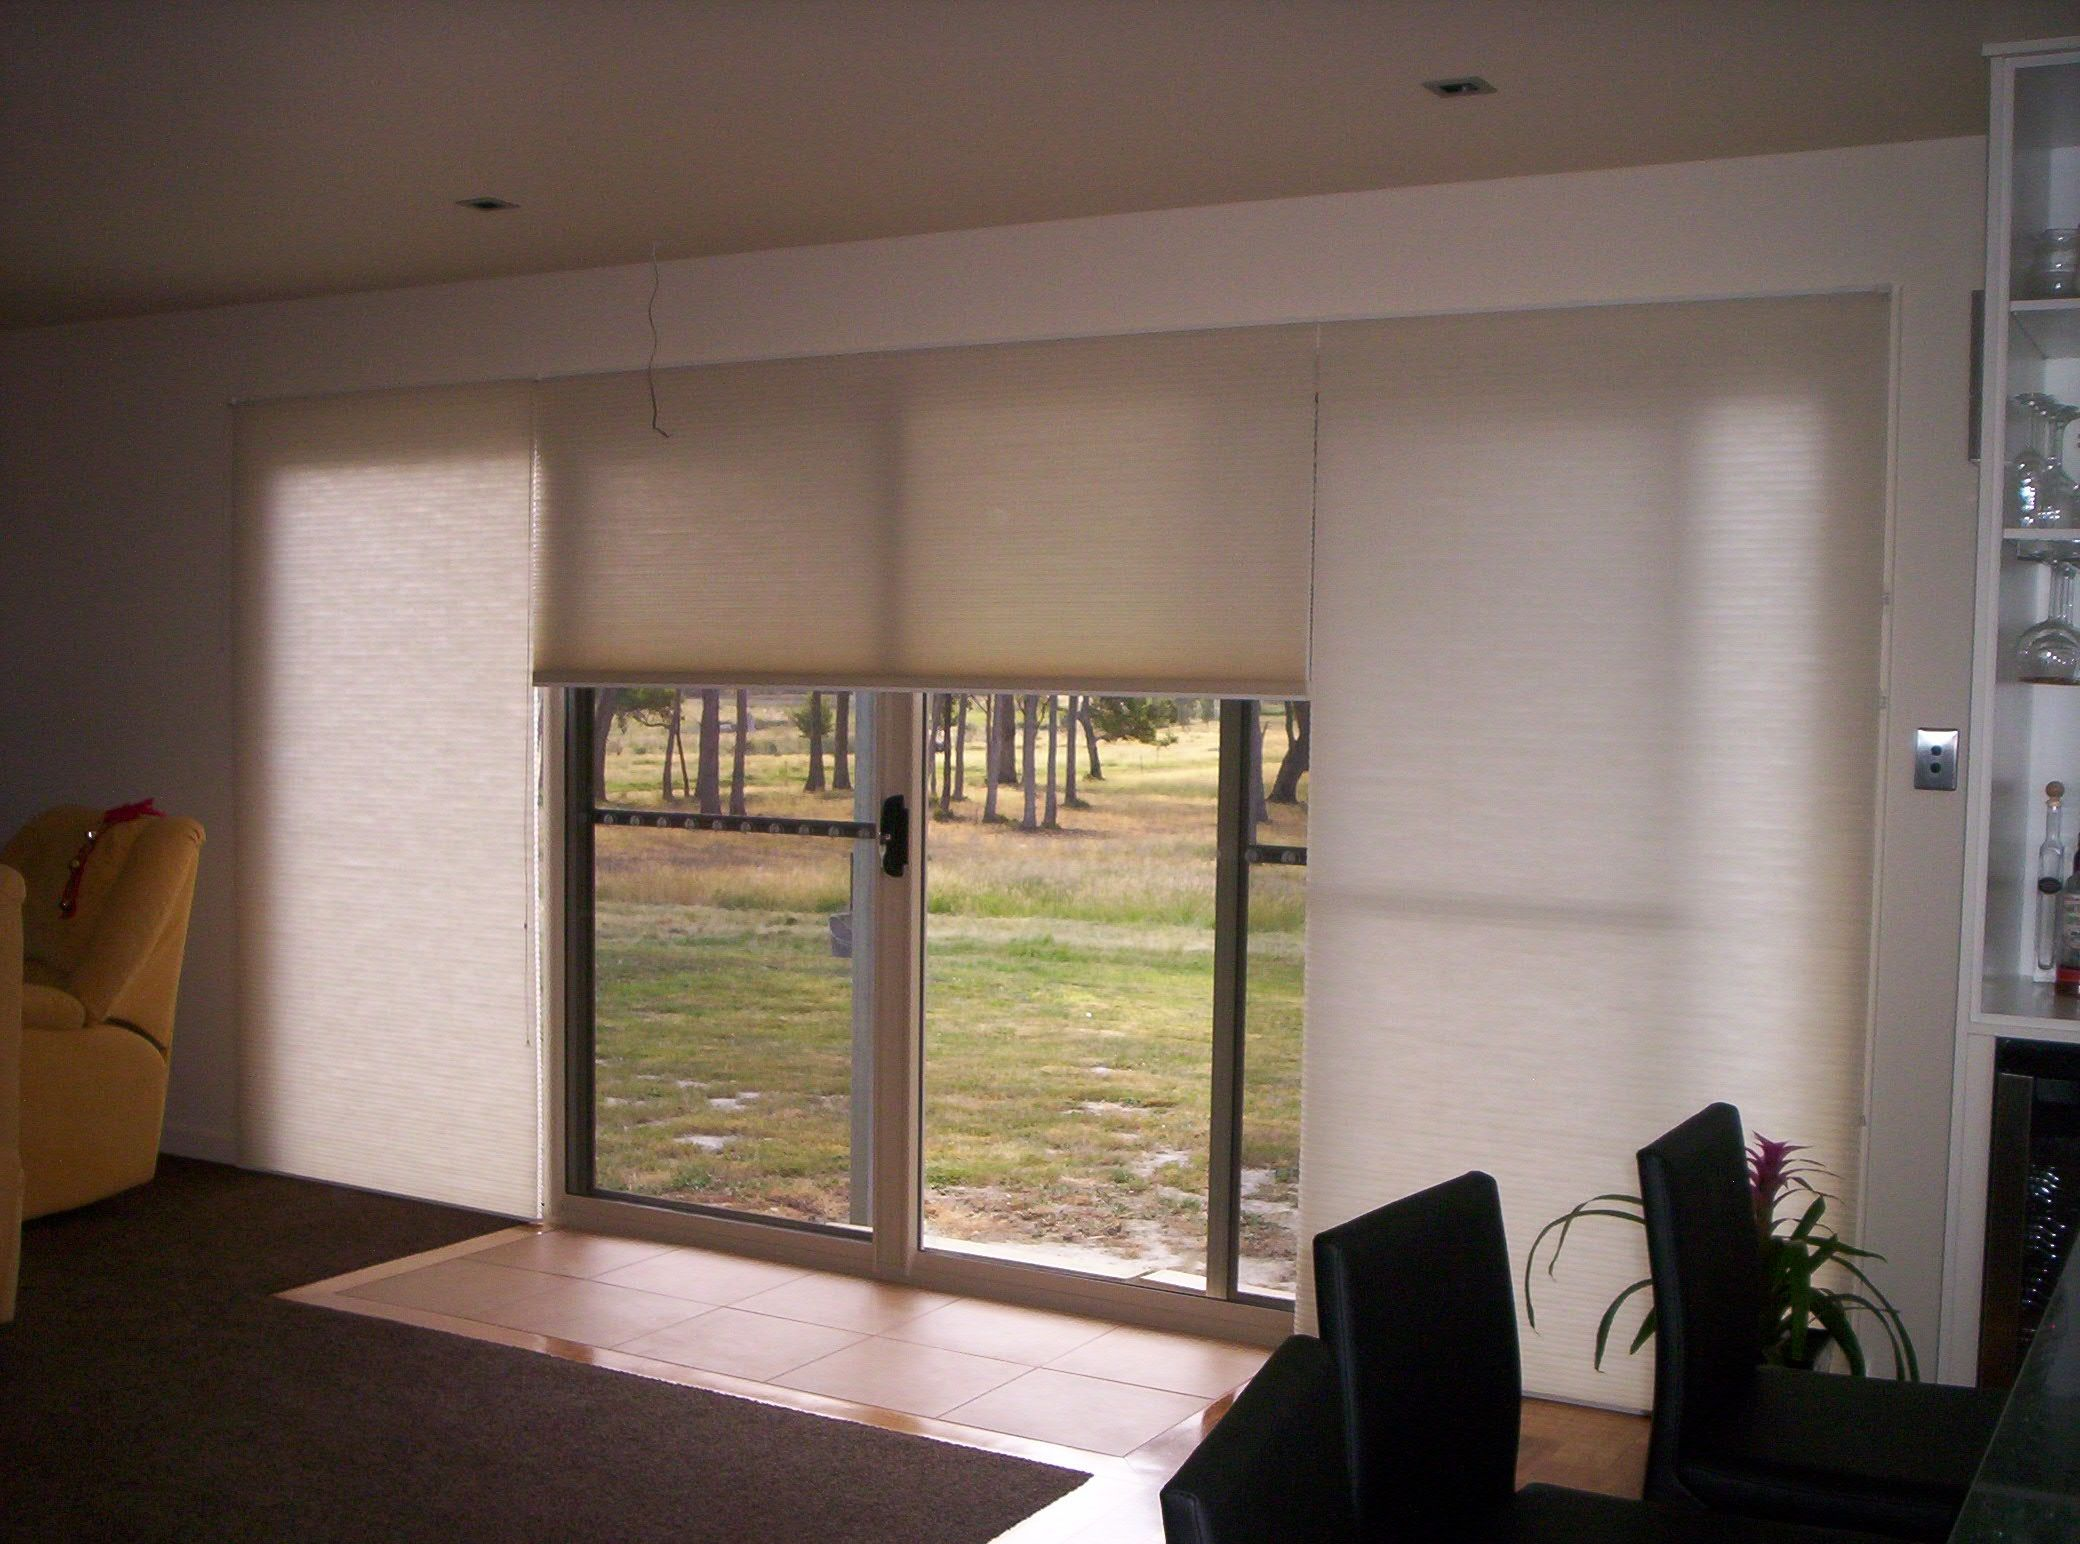 Solar Shades For Sliding Gl Doors | Migrant Resource Network on